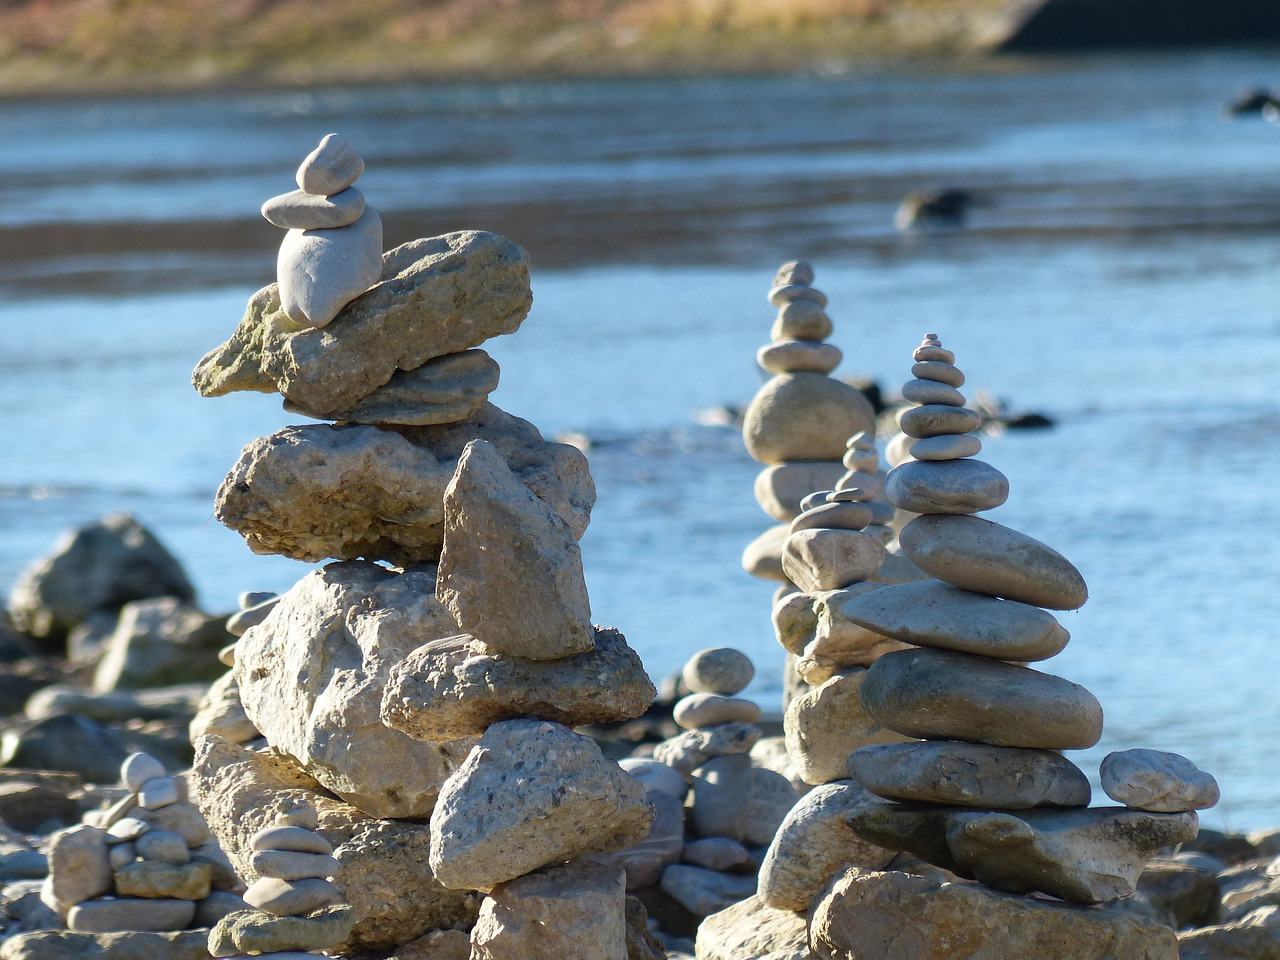 Cairn,water,river,stones,stone tower - free image from needpix.com